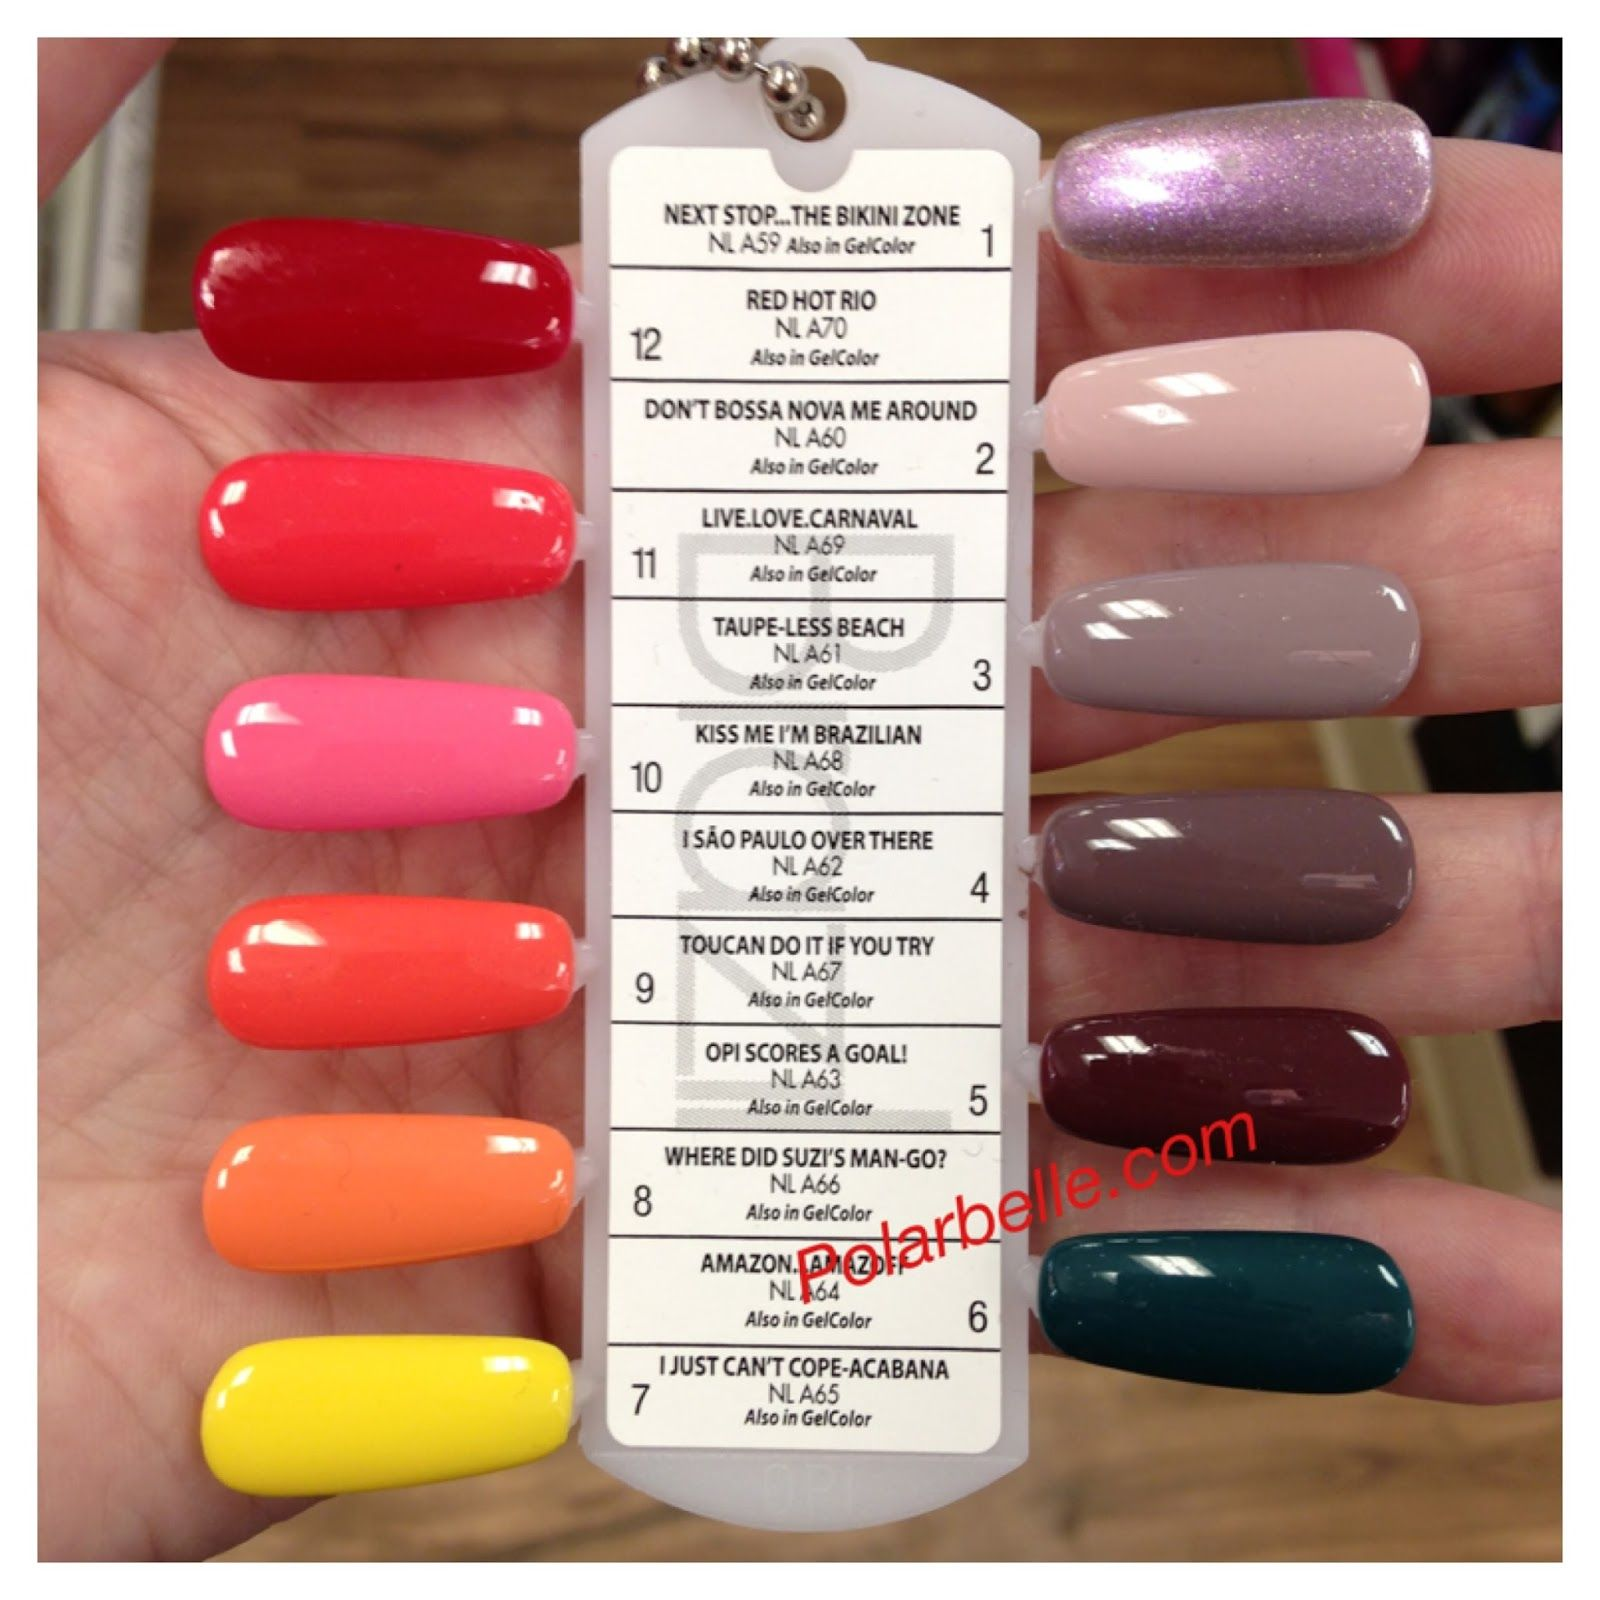 New Opi Brazil Nail Polish Collection Pics Swatches With Names I Love These